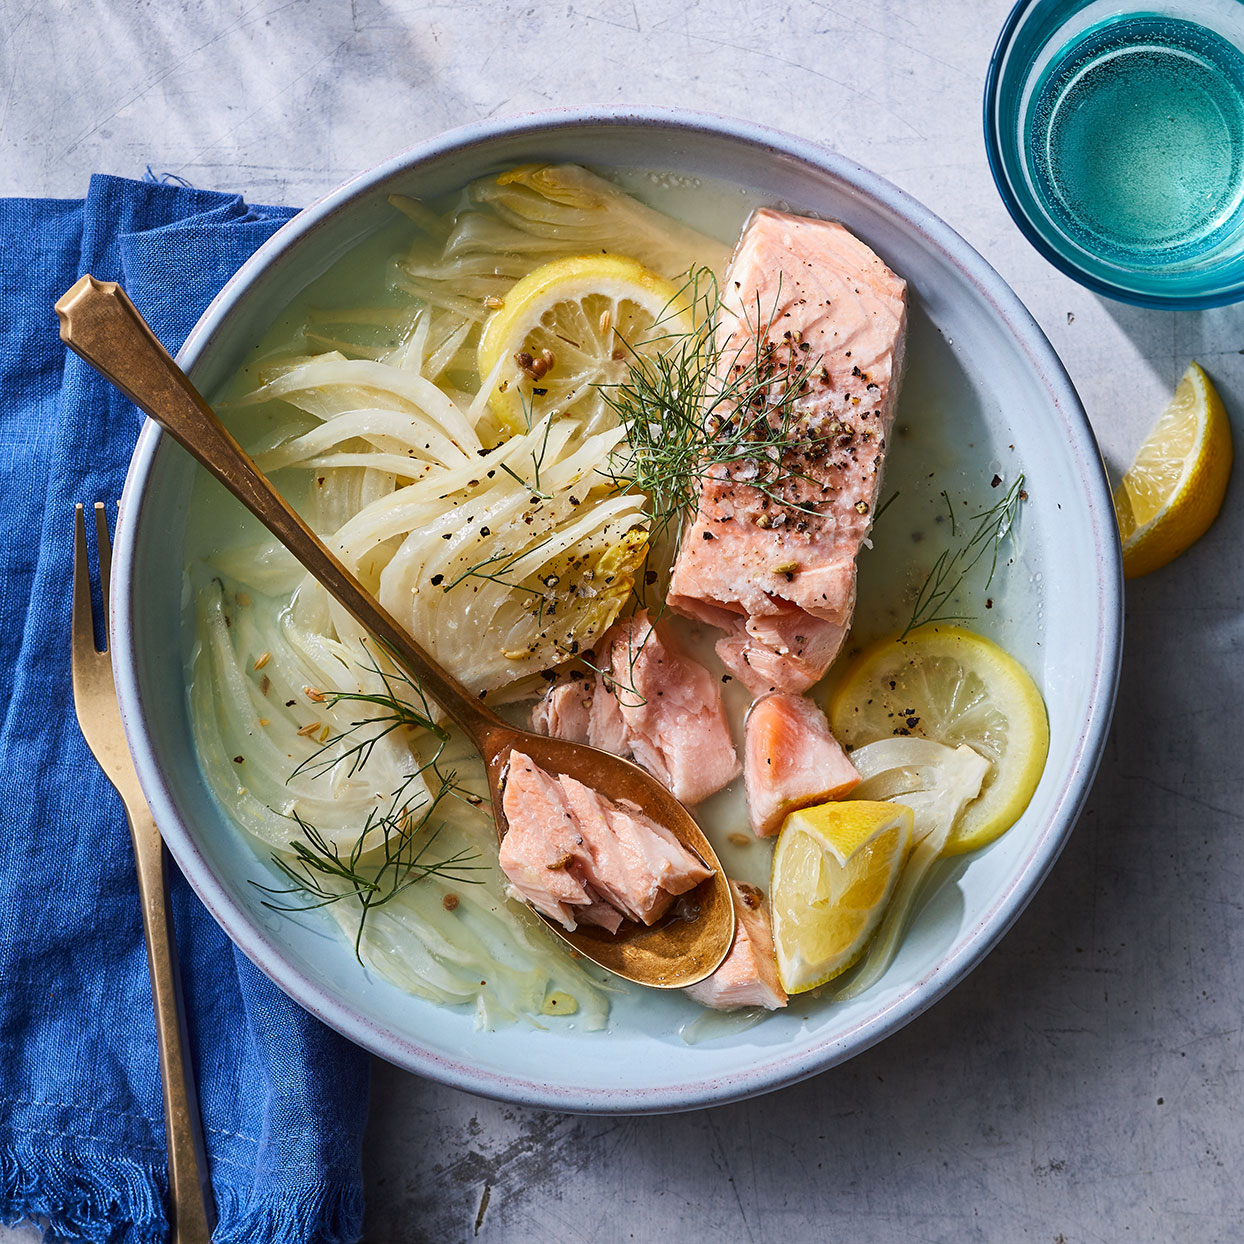 Poached Salmon with Fennel and Lemon